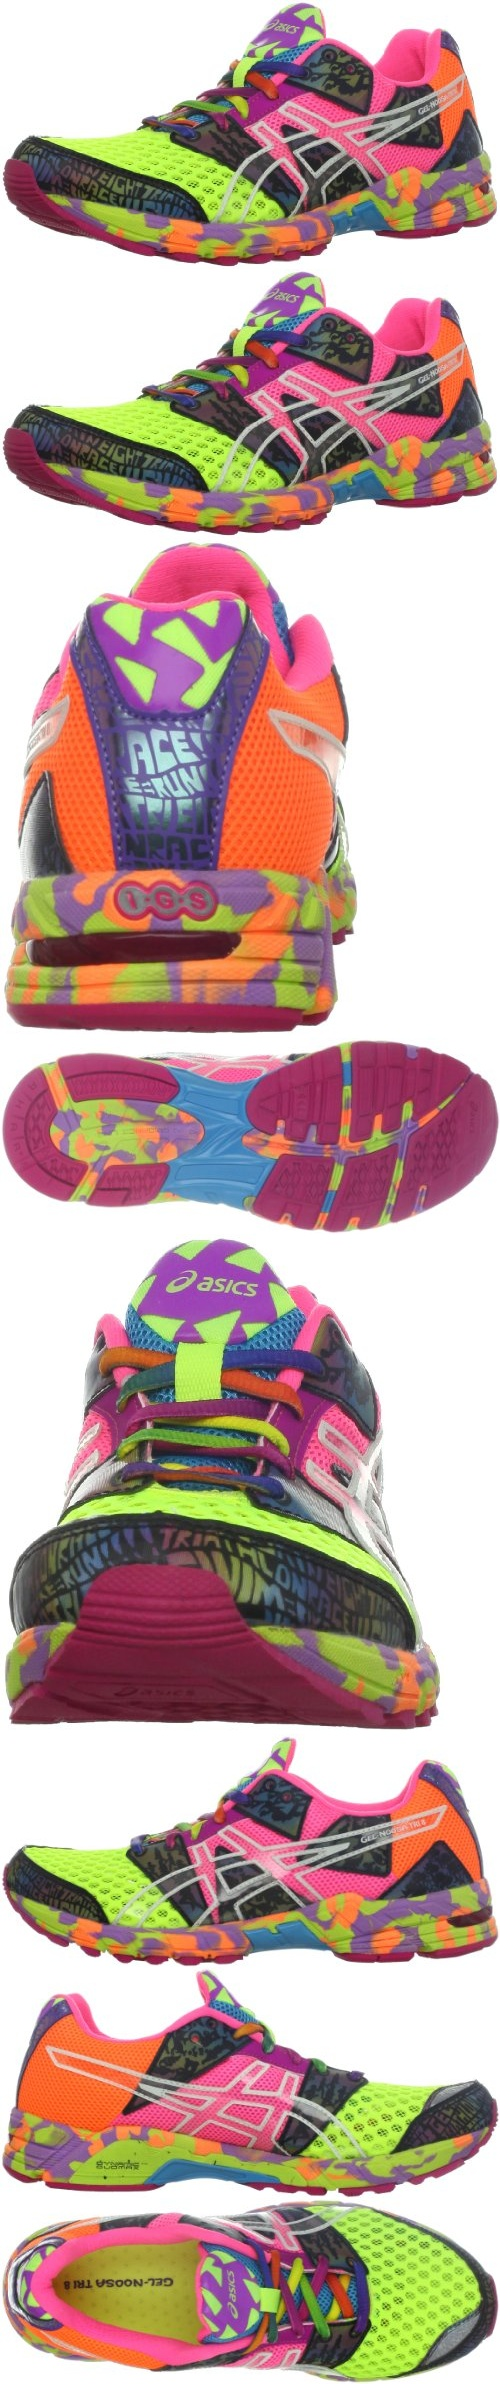 ASICS Women's GEL-Noosa Tri 8 Running Shoe - Asics Noosa Tri 8 are just as extreme as the athletes who wear them.Propulsion Trusstic mimics the connective tissue in the foot Organic and nonorganic outsole for enhanced traction DuoMax Support Sys... - Running - Apparel